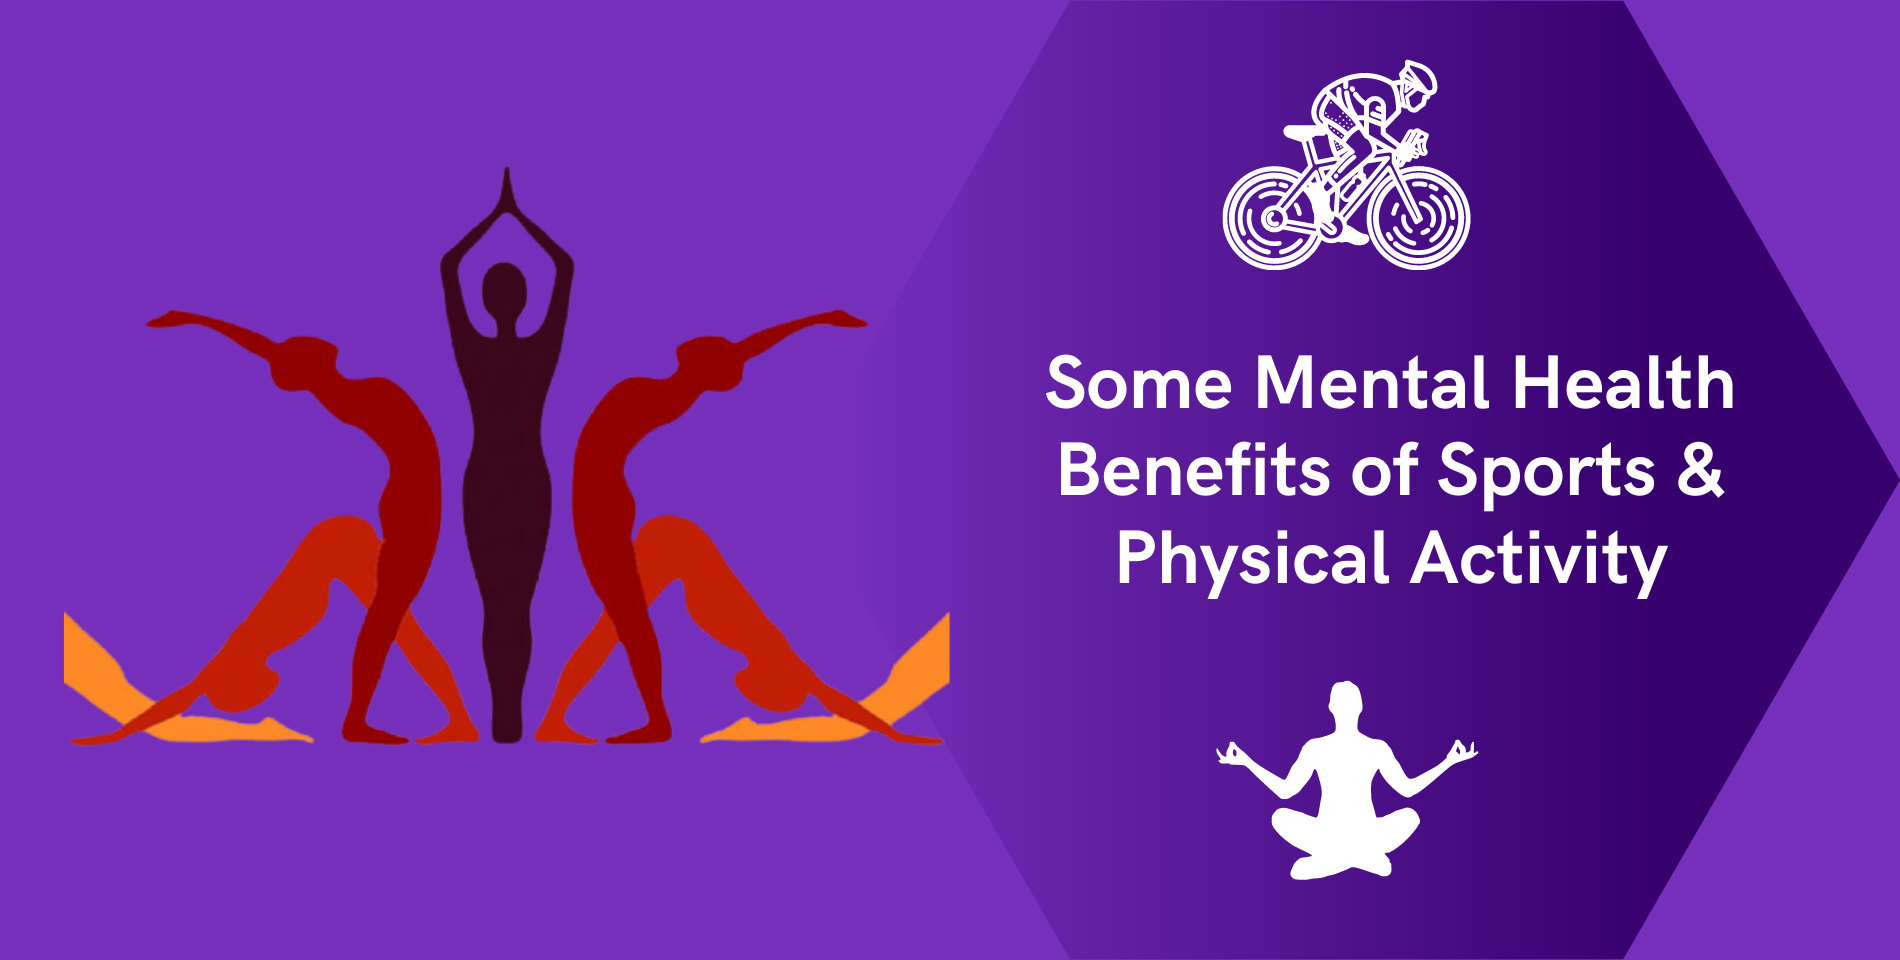 Some Mental Health Benefits of Sports & Physical Activity